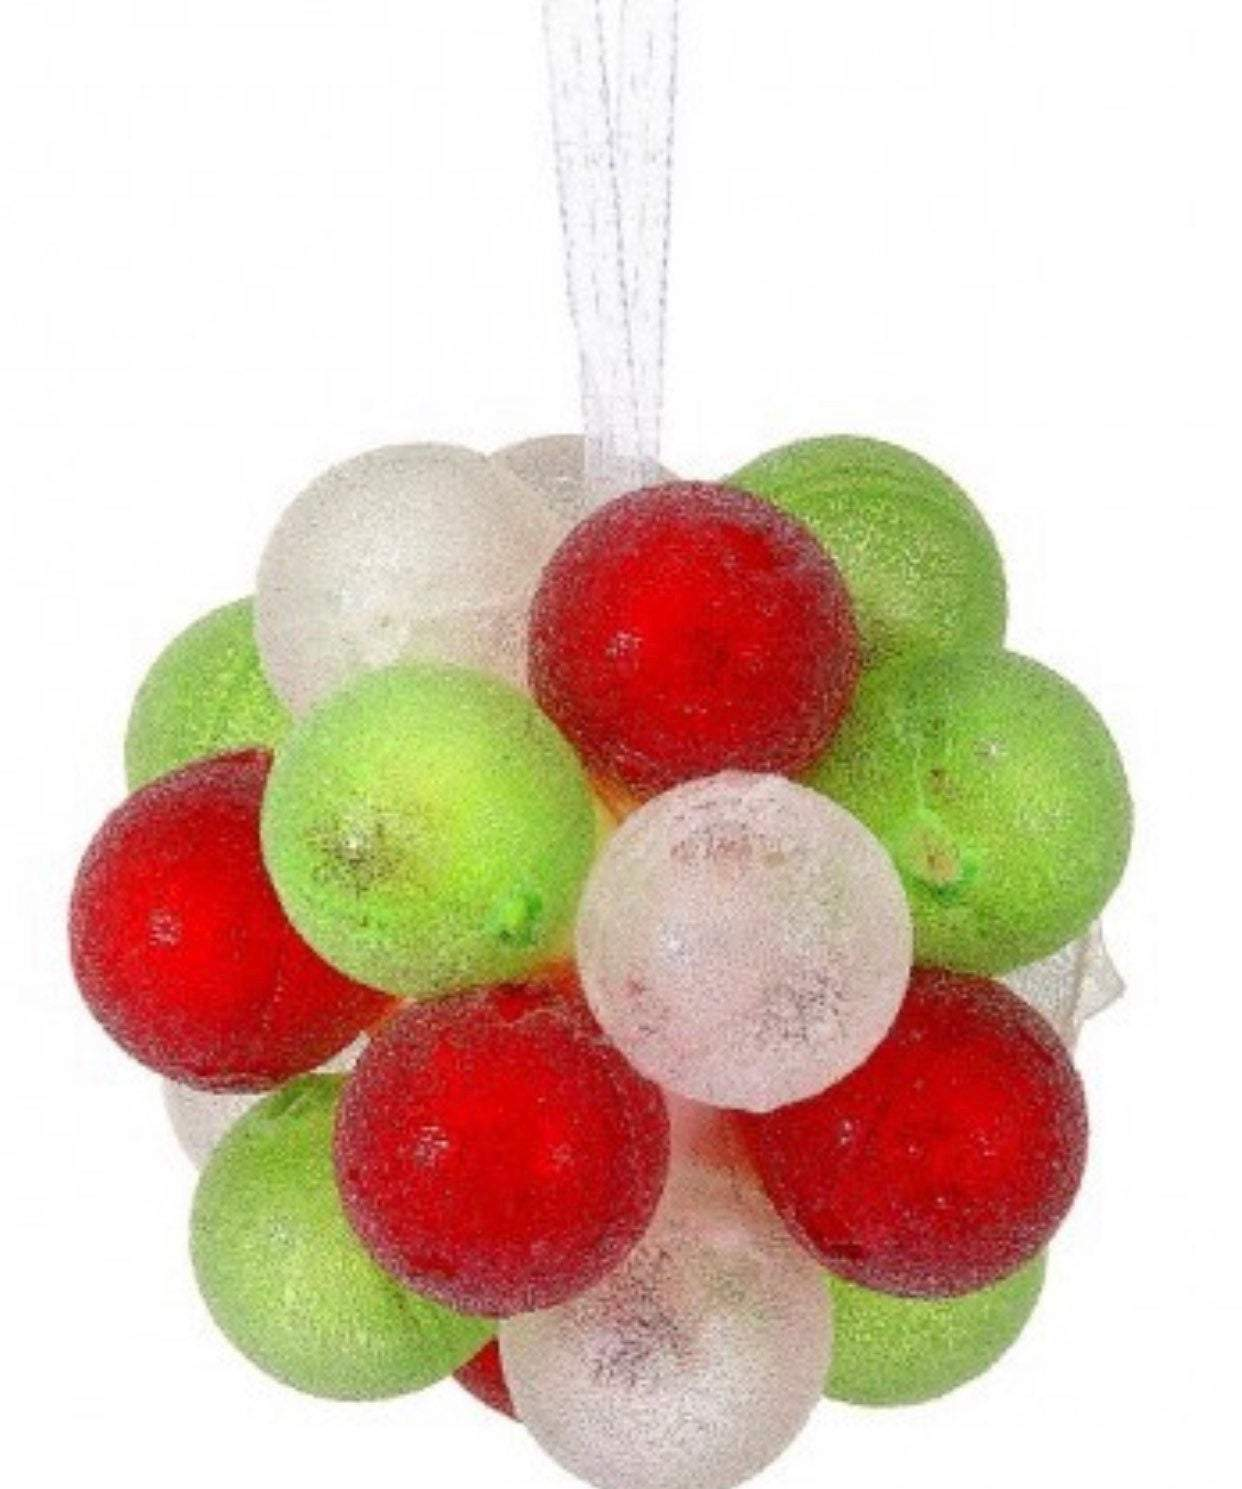 "Gumdrop jawbreaker candy red candy ornaments, 3.5"" christmas ornaments, ornament balls for tree, wreath attachments, candy theme"